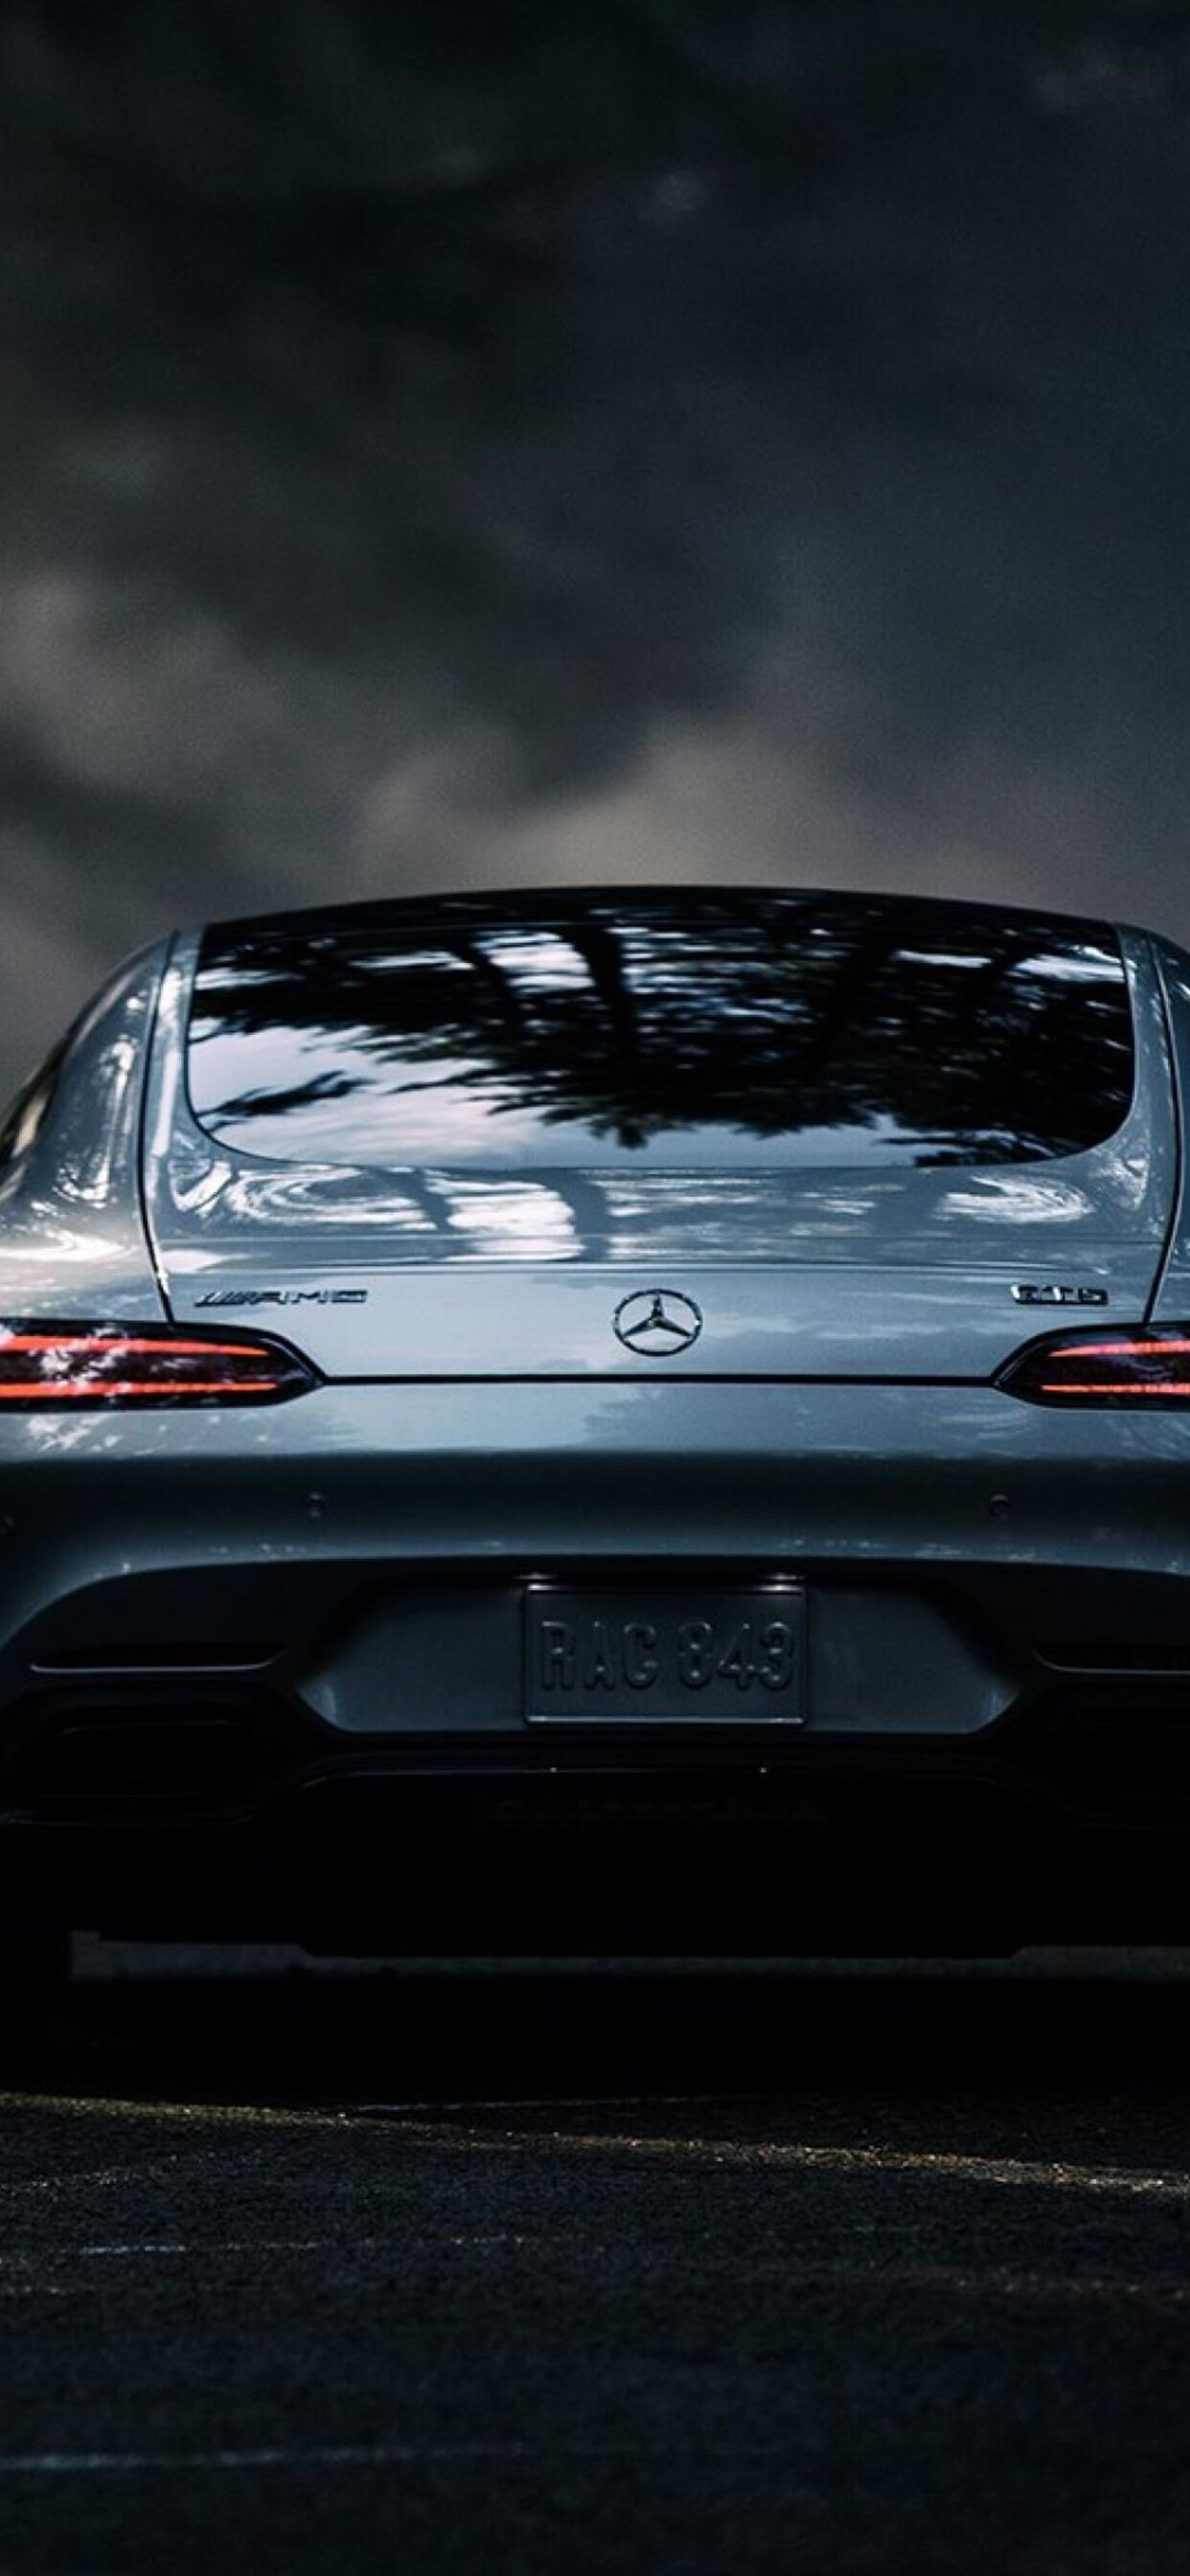 1242x2688 Mercedes Benz Amg Iphone Xs Max Hd 4k Wallpapers Images